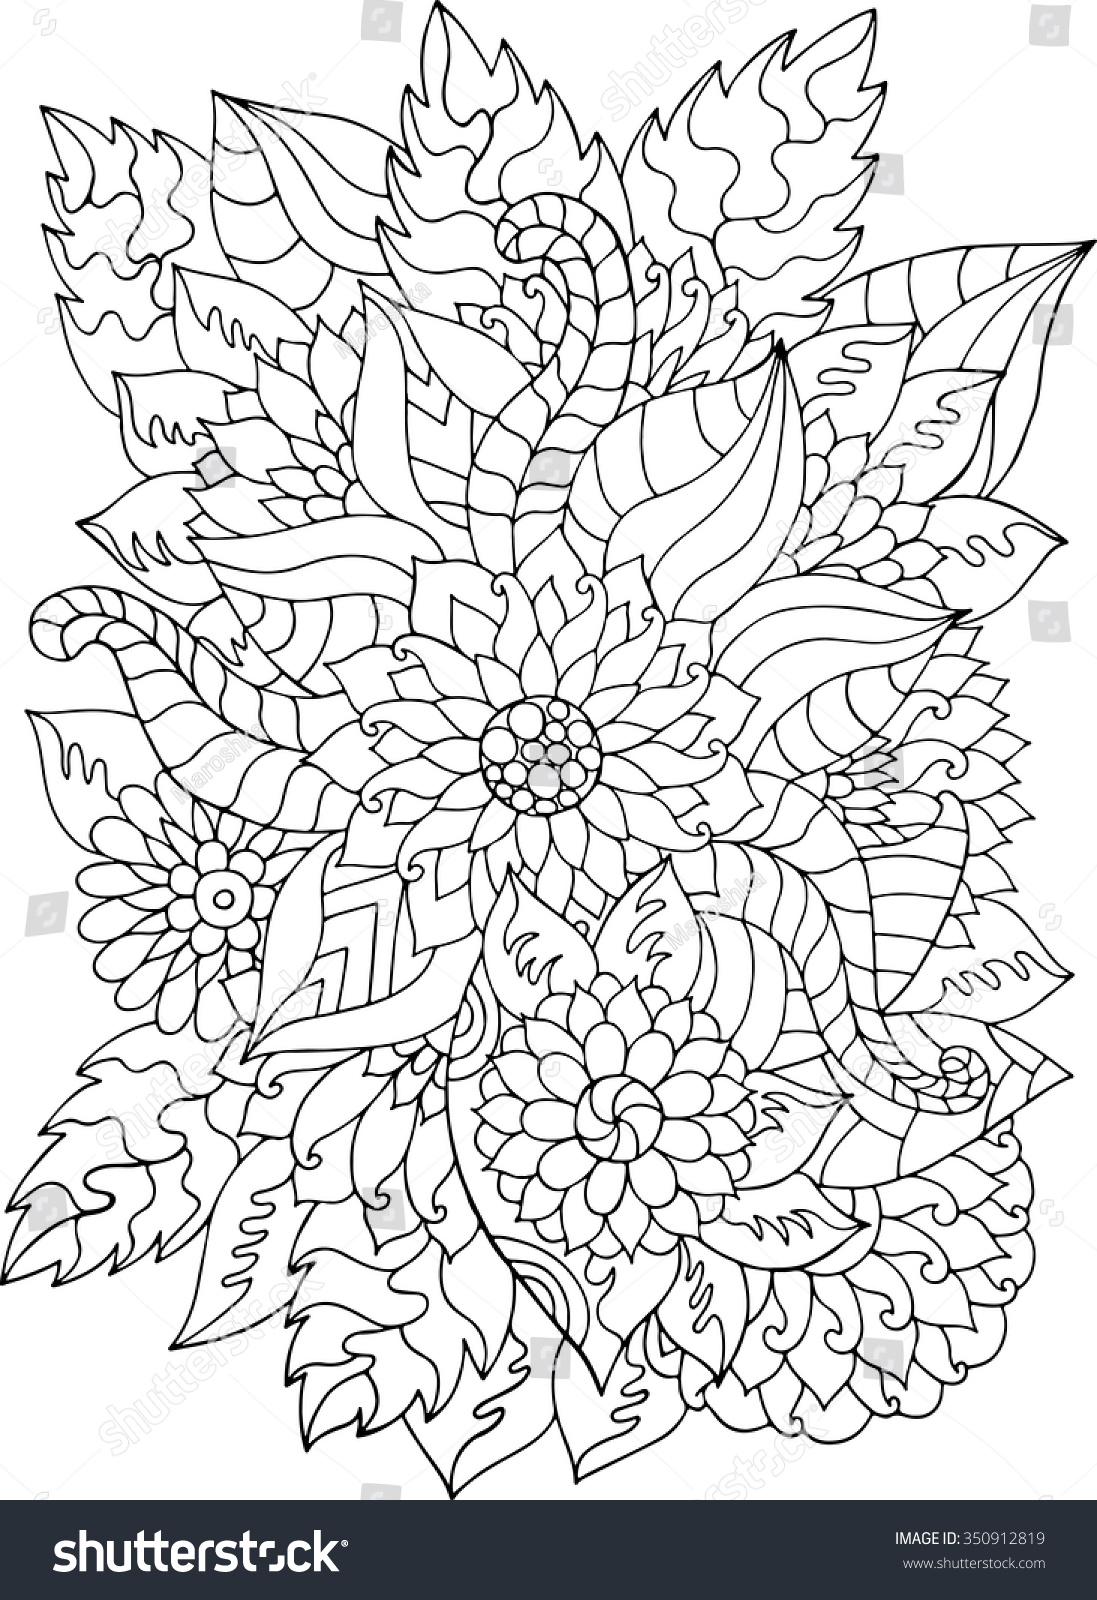 flower leaves coloring pages - photo#43